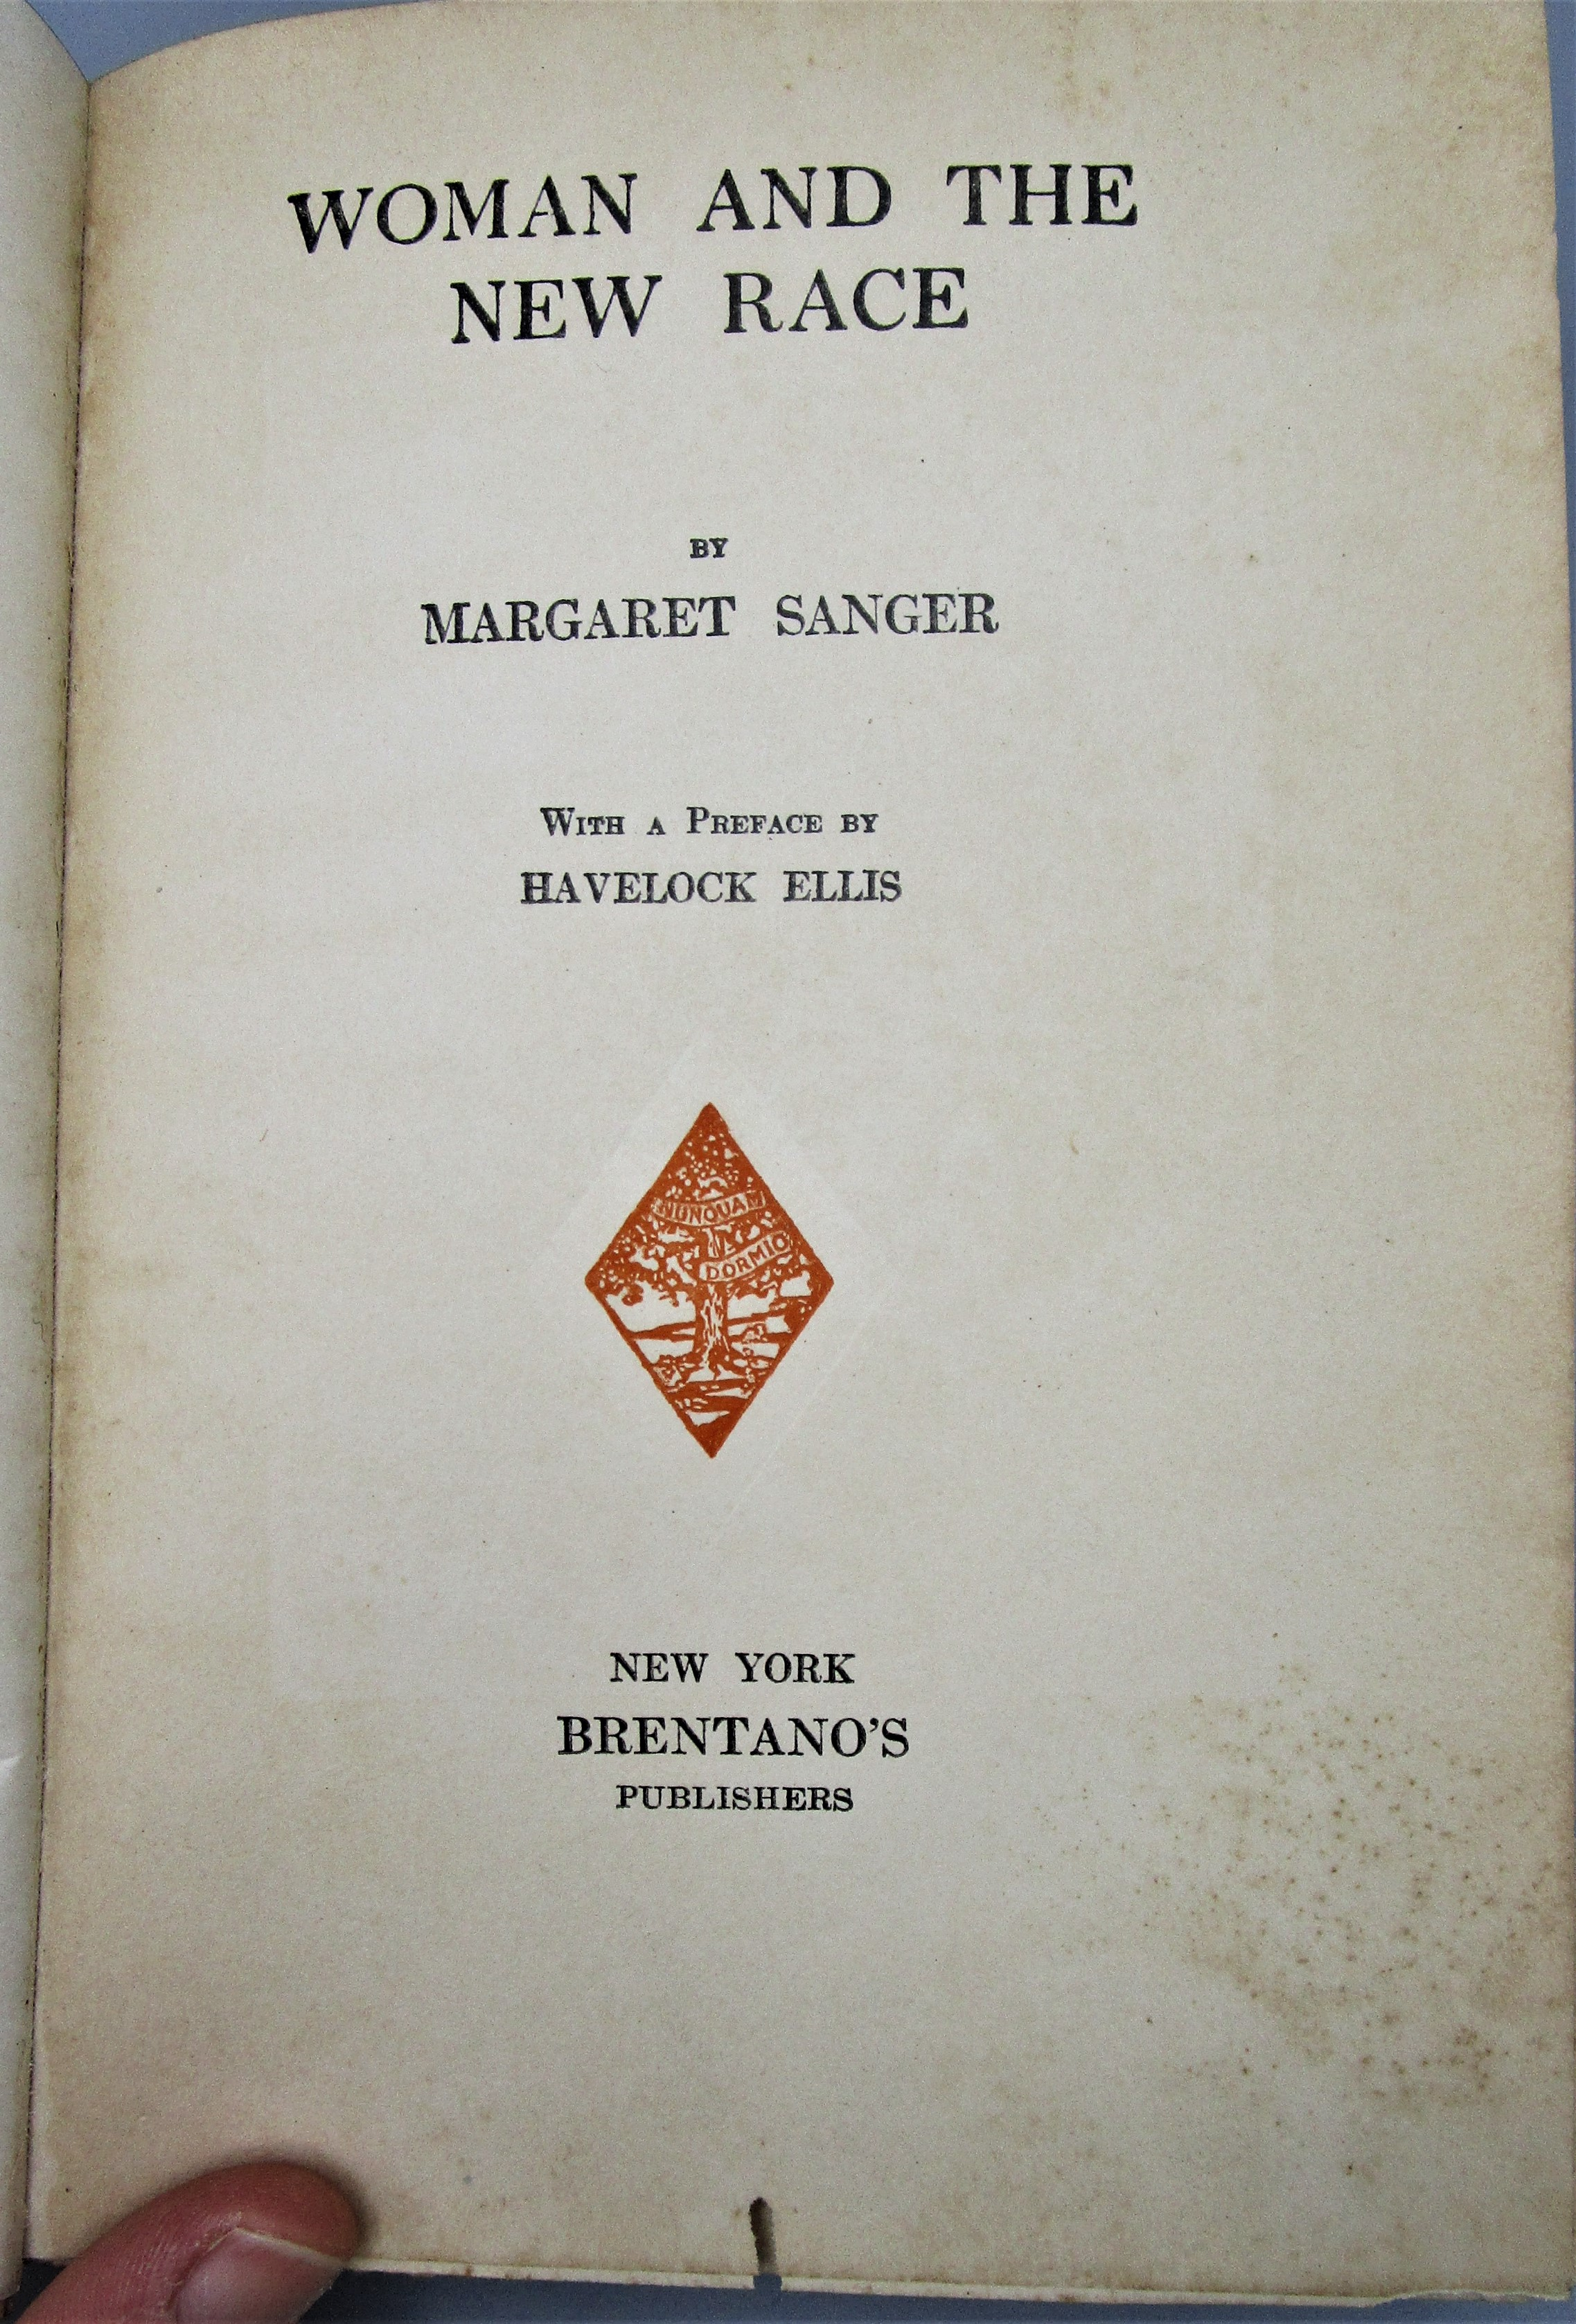 WOMAN AND THE NEW RACE, by Margaret Sanger - 1920 [1st Ed]